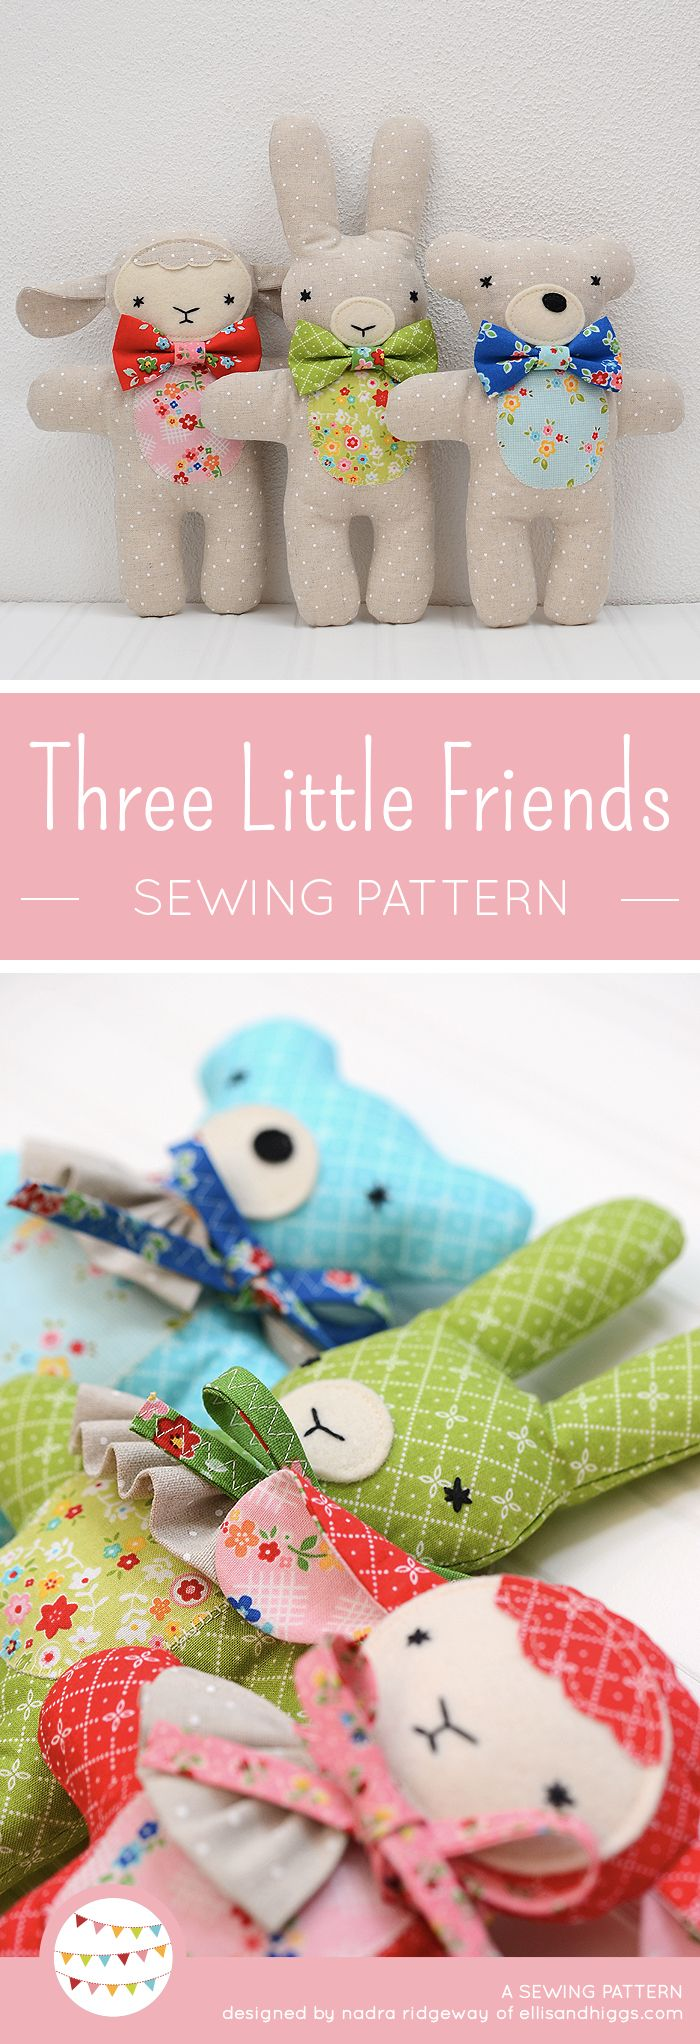 Three Little Friends is a sewing pattern for three cute stuffed animals, a bear, a bunny and a lambkin. Easy sewing pattern, softie pattern, plushie pattern, stuffed animal pattern, sewing for baby, sewing for kids, Easter crafts, Easter craft ideas, Easter DIY craft project. * Nähanleitung für drei süße Kuscheltiere: Hase, Bär und Lämmchen. Nähen fürs Baby, Nähen für Kinder, Ostern Ideen, Ostern baste basteln, DIY Ostern. Pattern by / Anleitung von Nadra Ridgeway, ellis & higgs